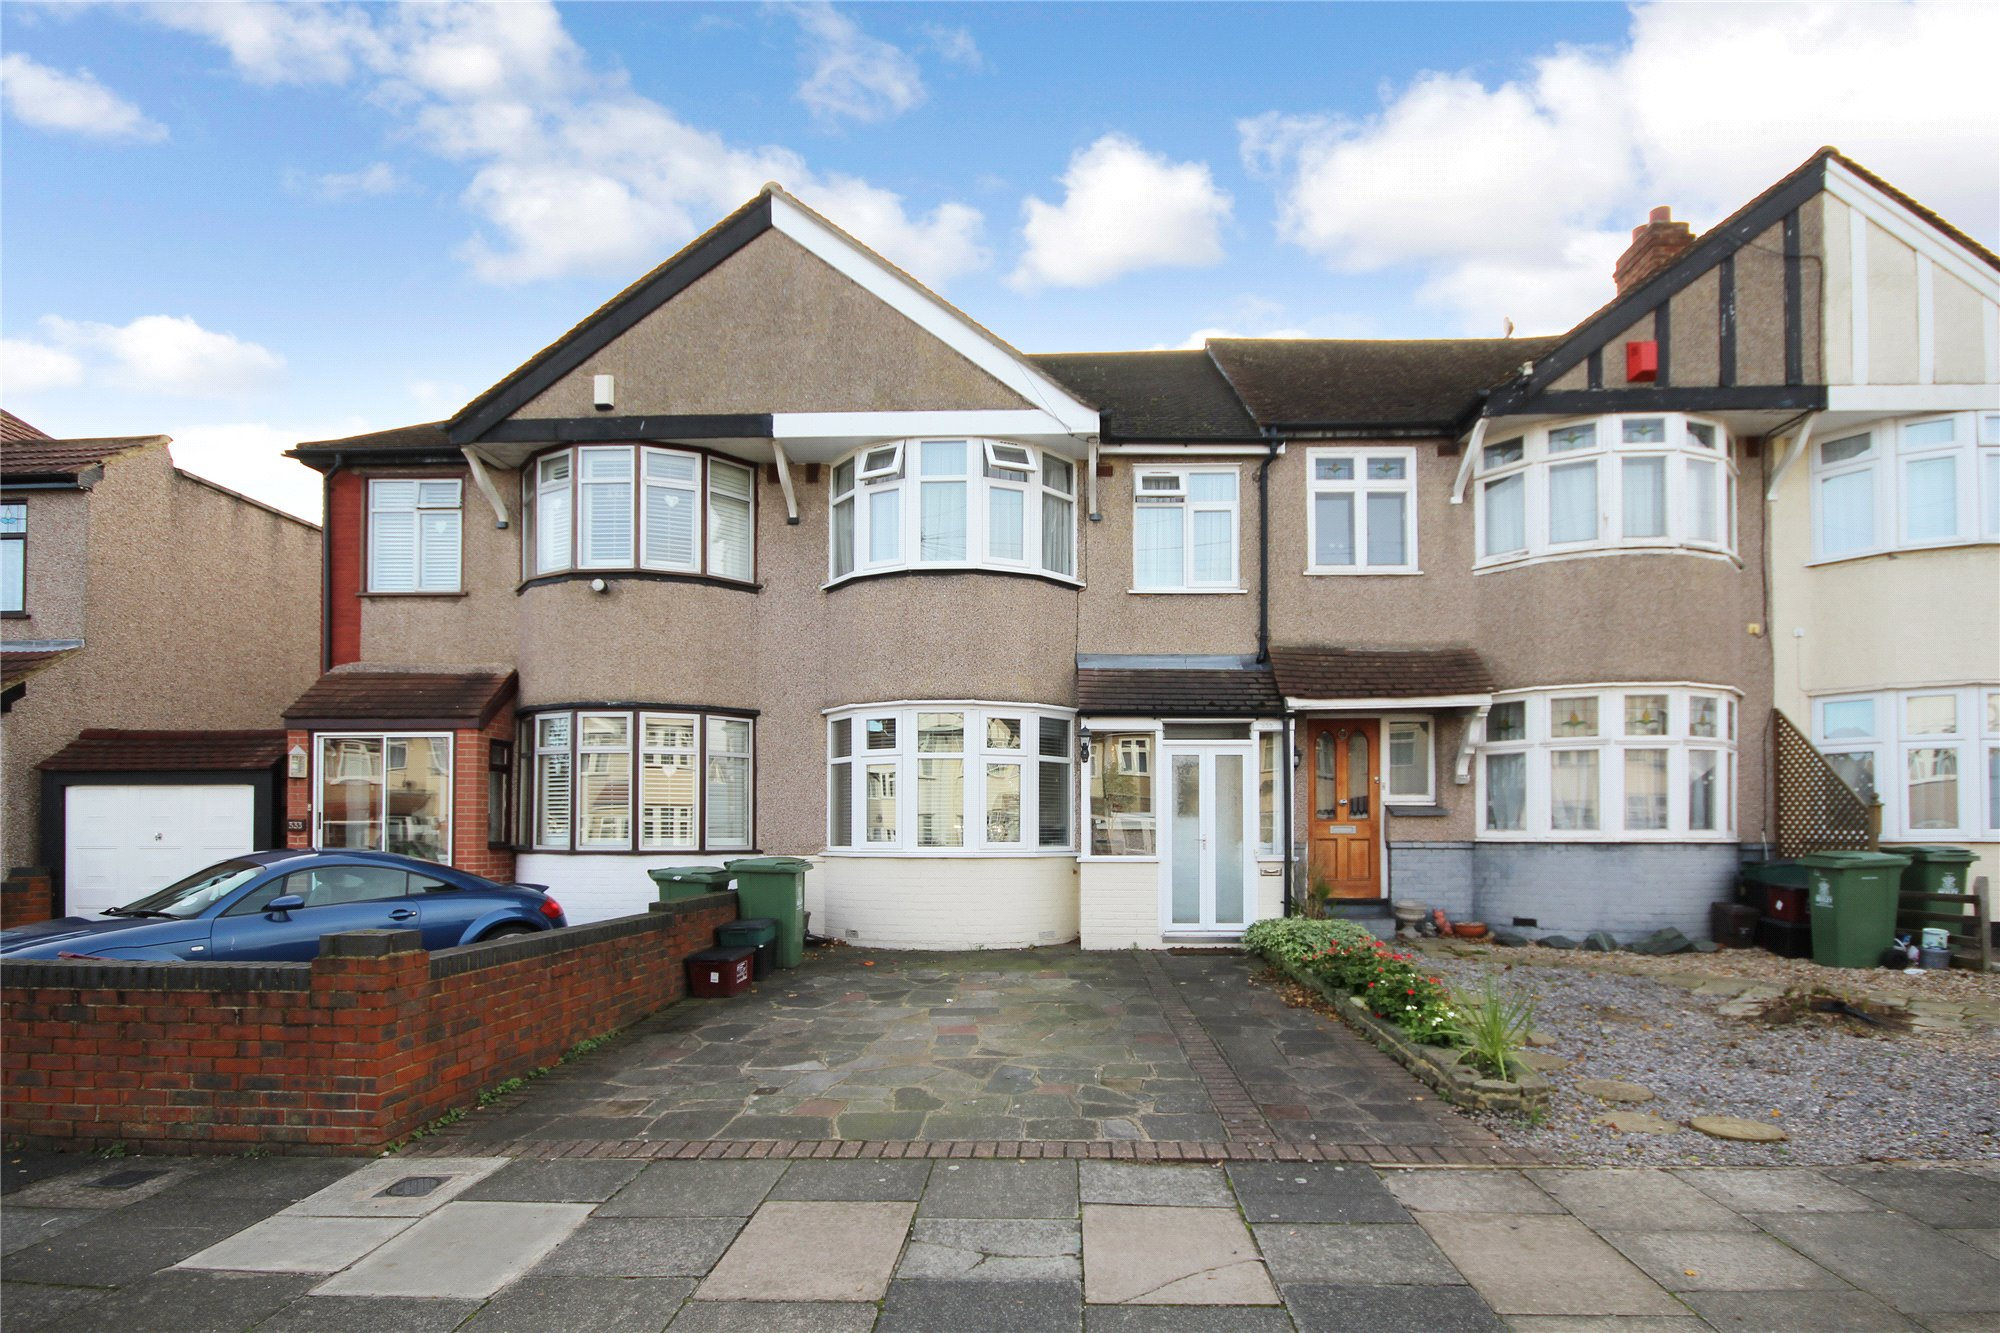 Sutherland Avenue, South Welling, Kent, DA16